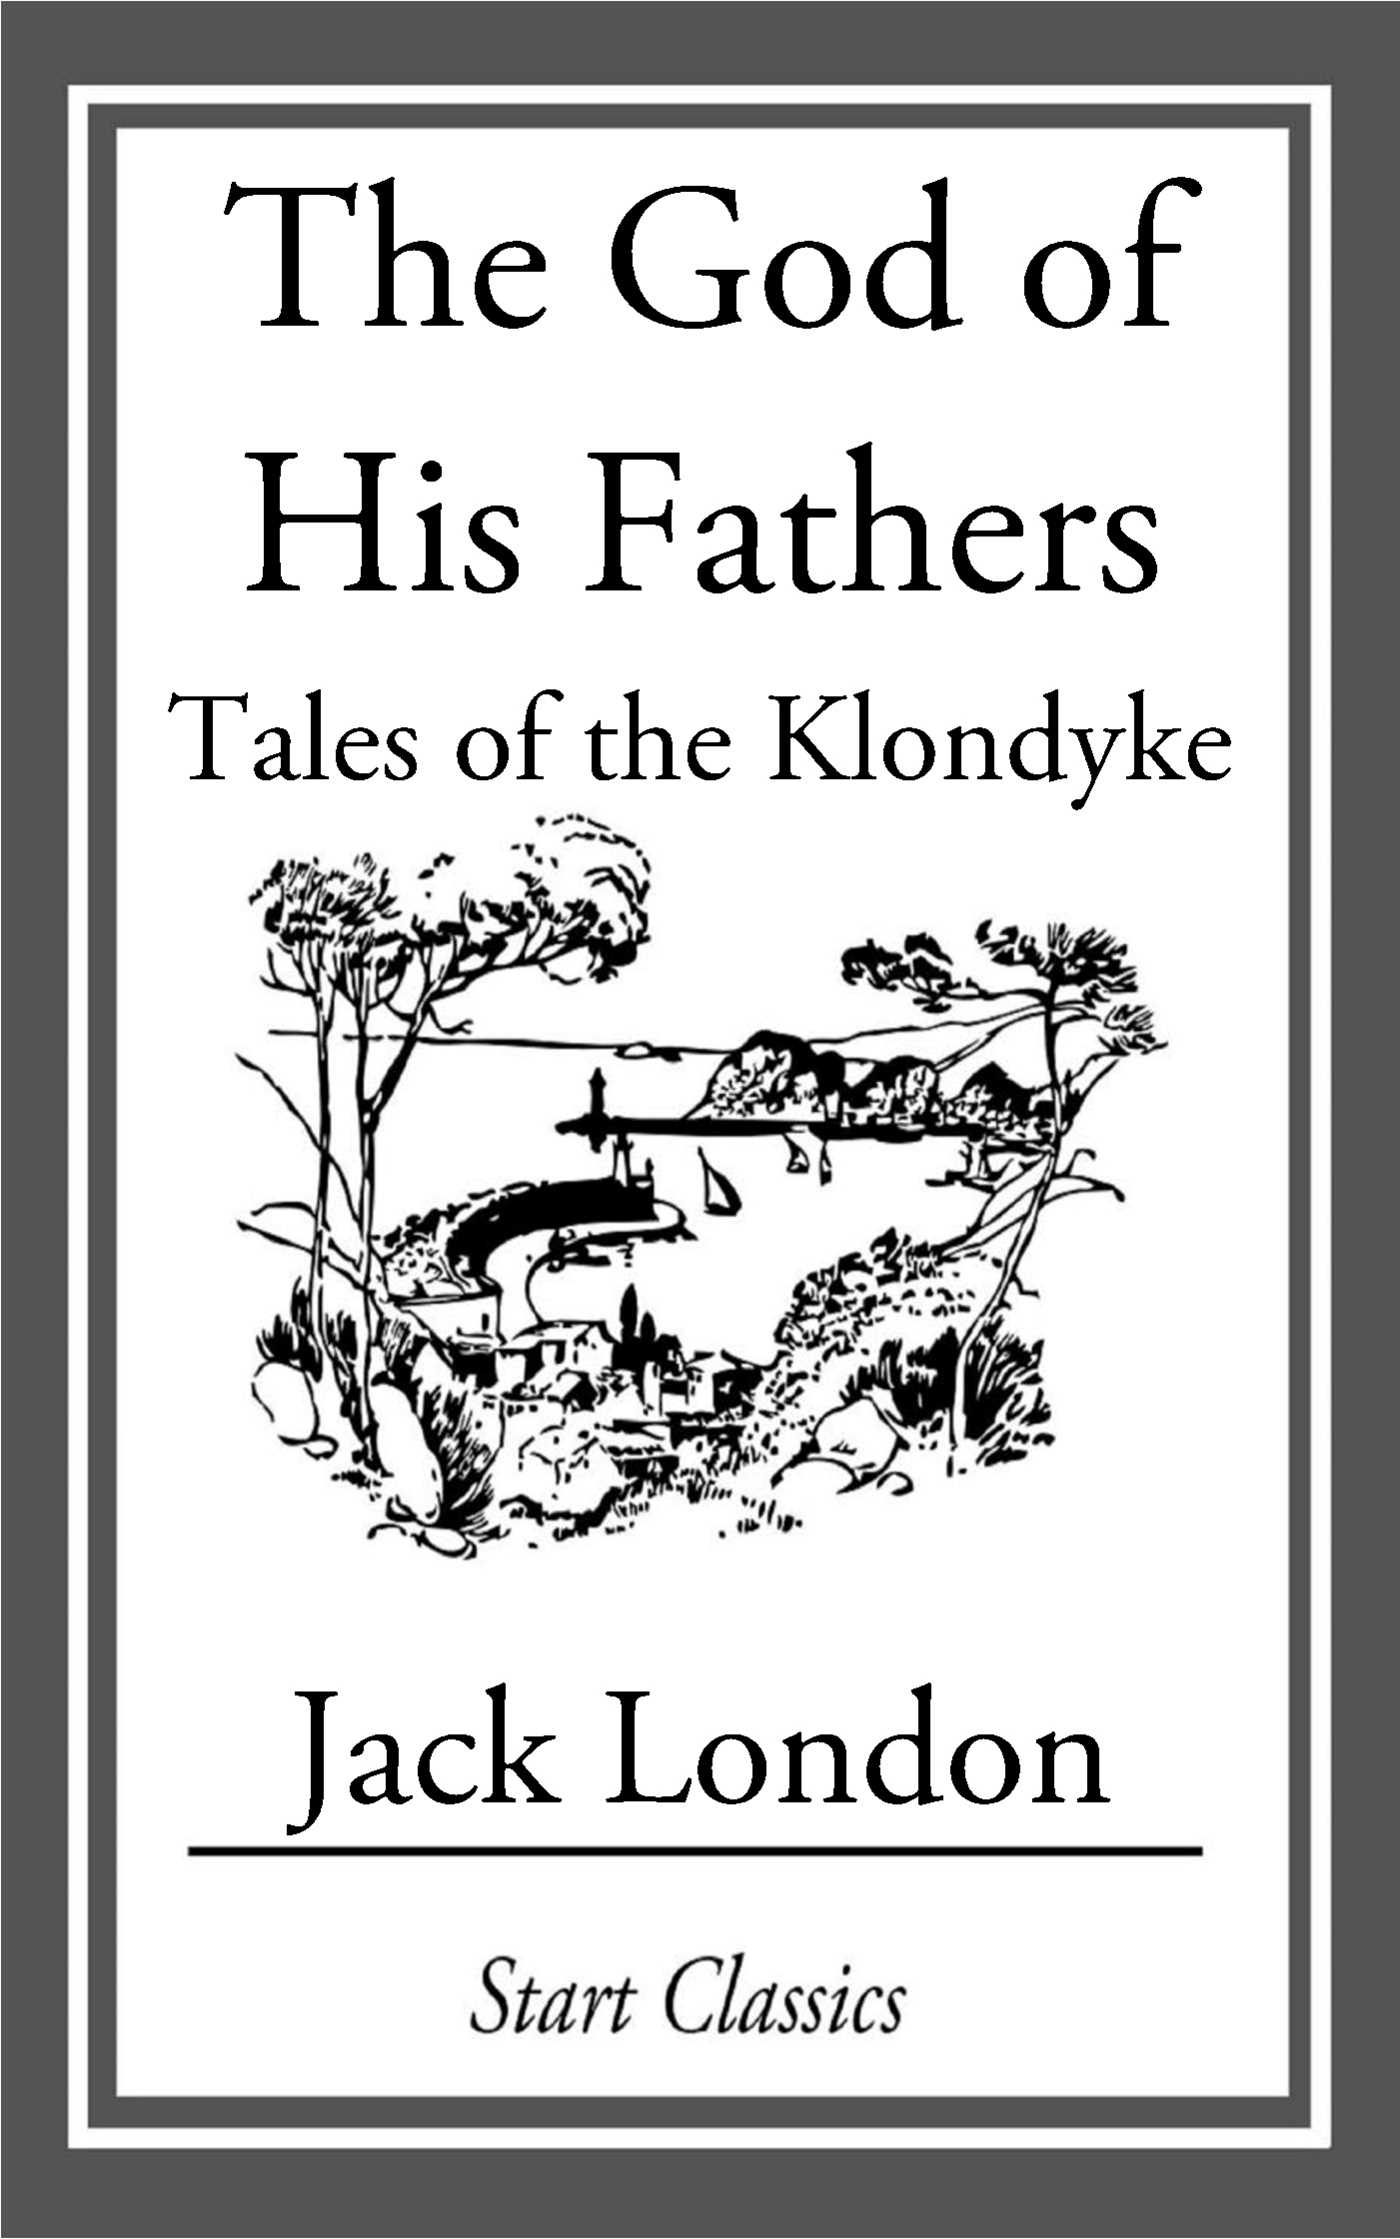 More Books by Jack London